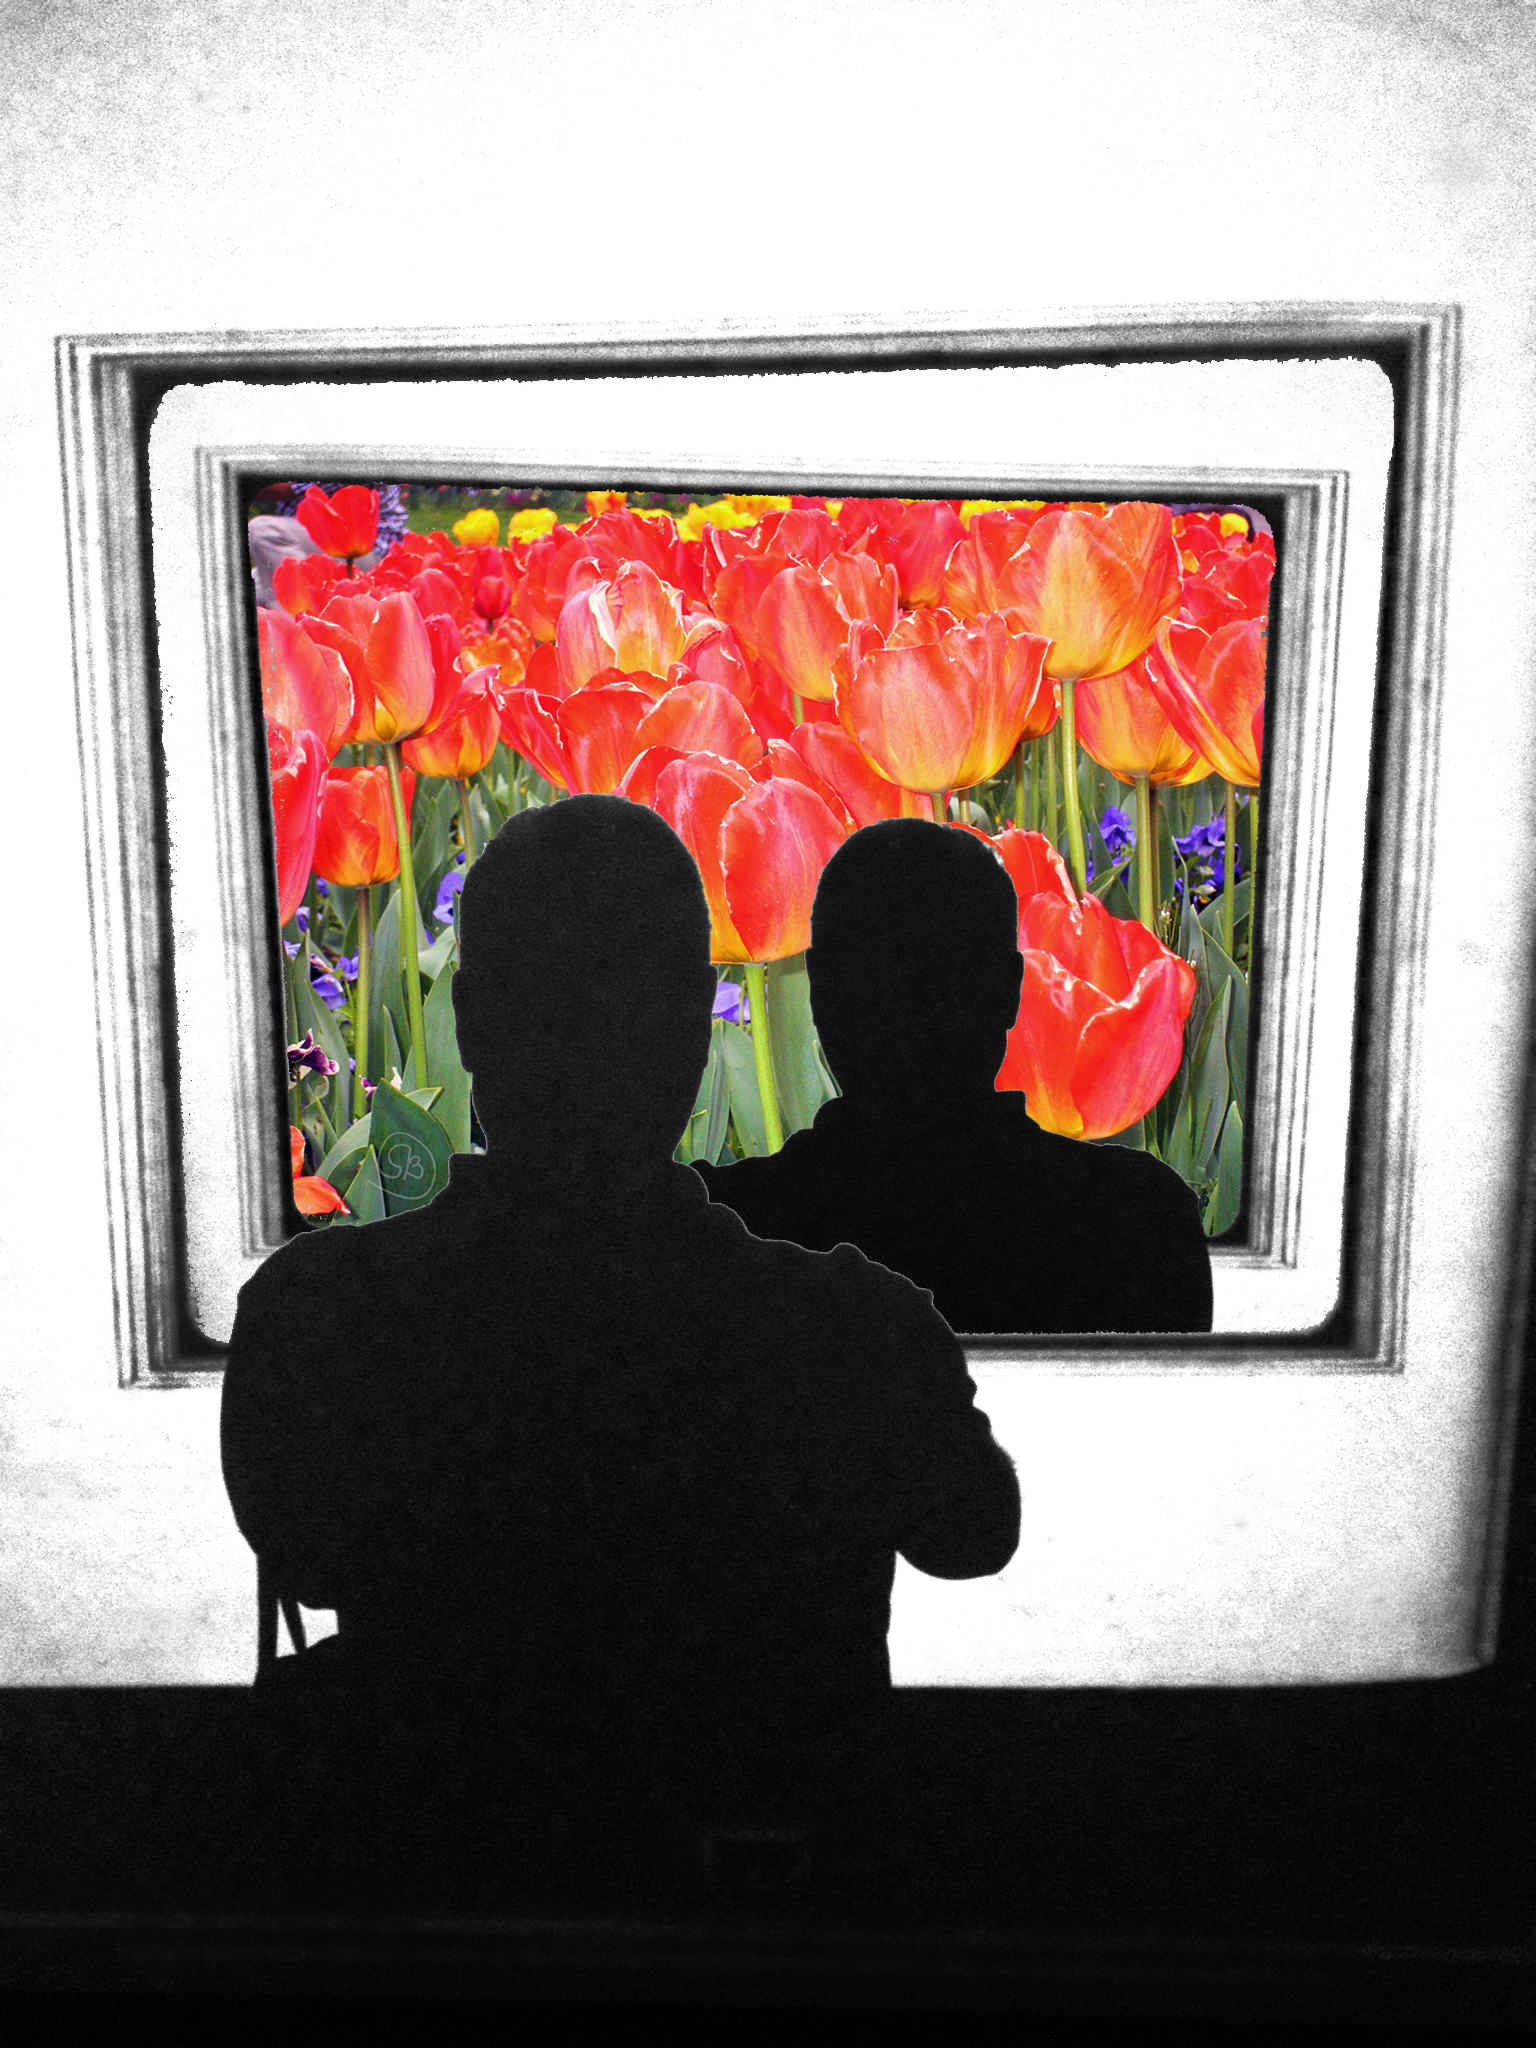 Selfie within a selfie and tulips.jpg